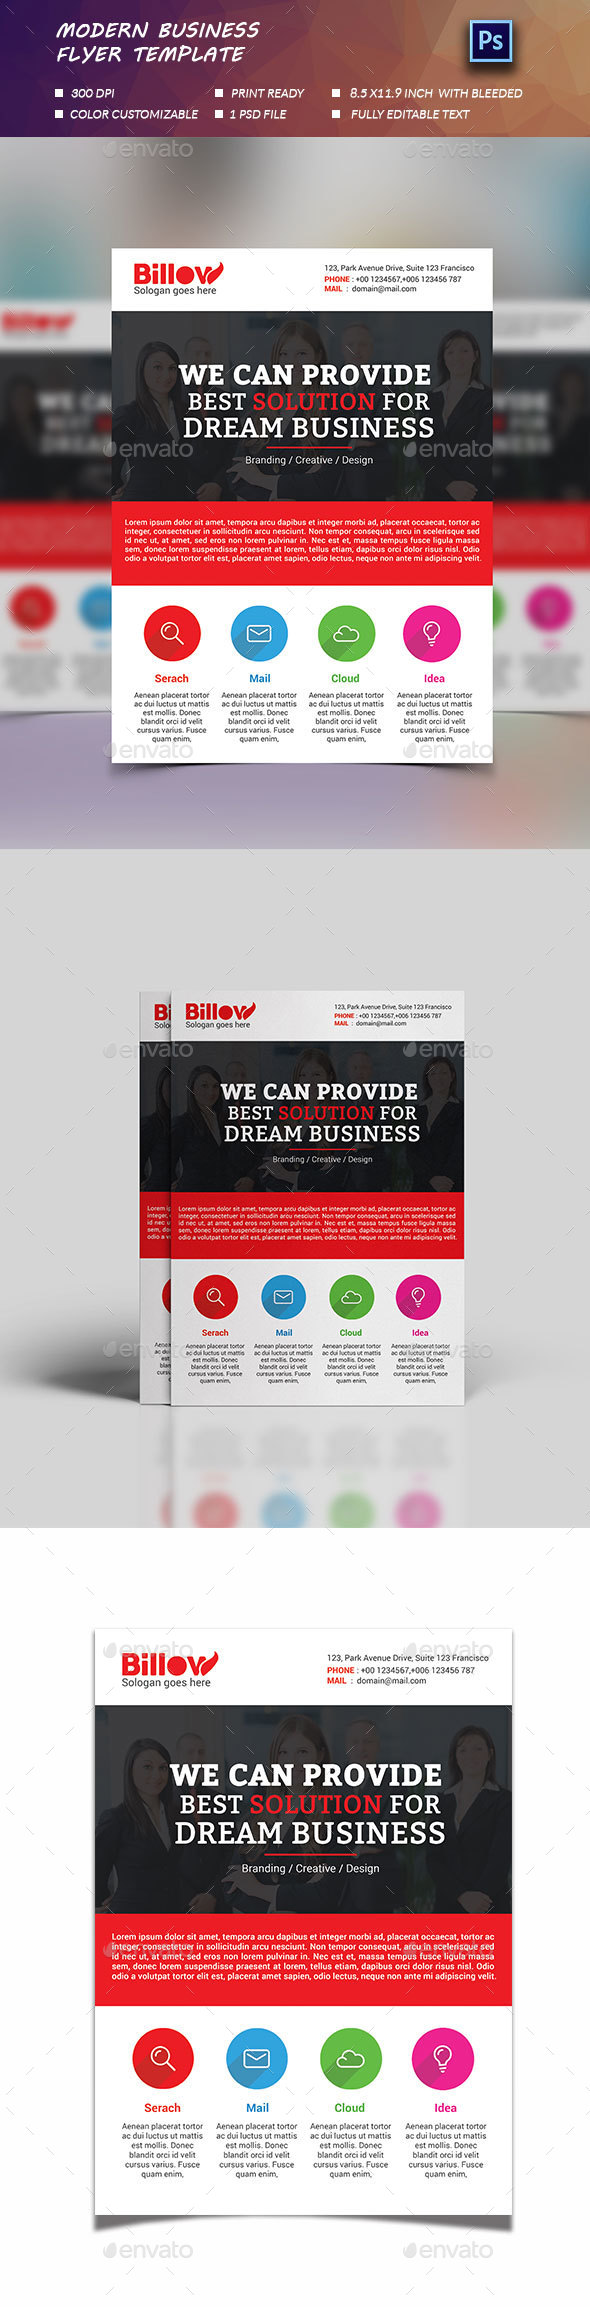 Modern Business Flyer Template - Flyers Print Templates